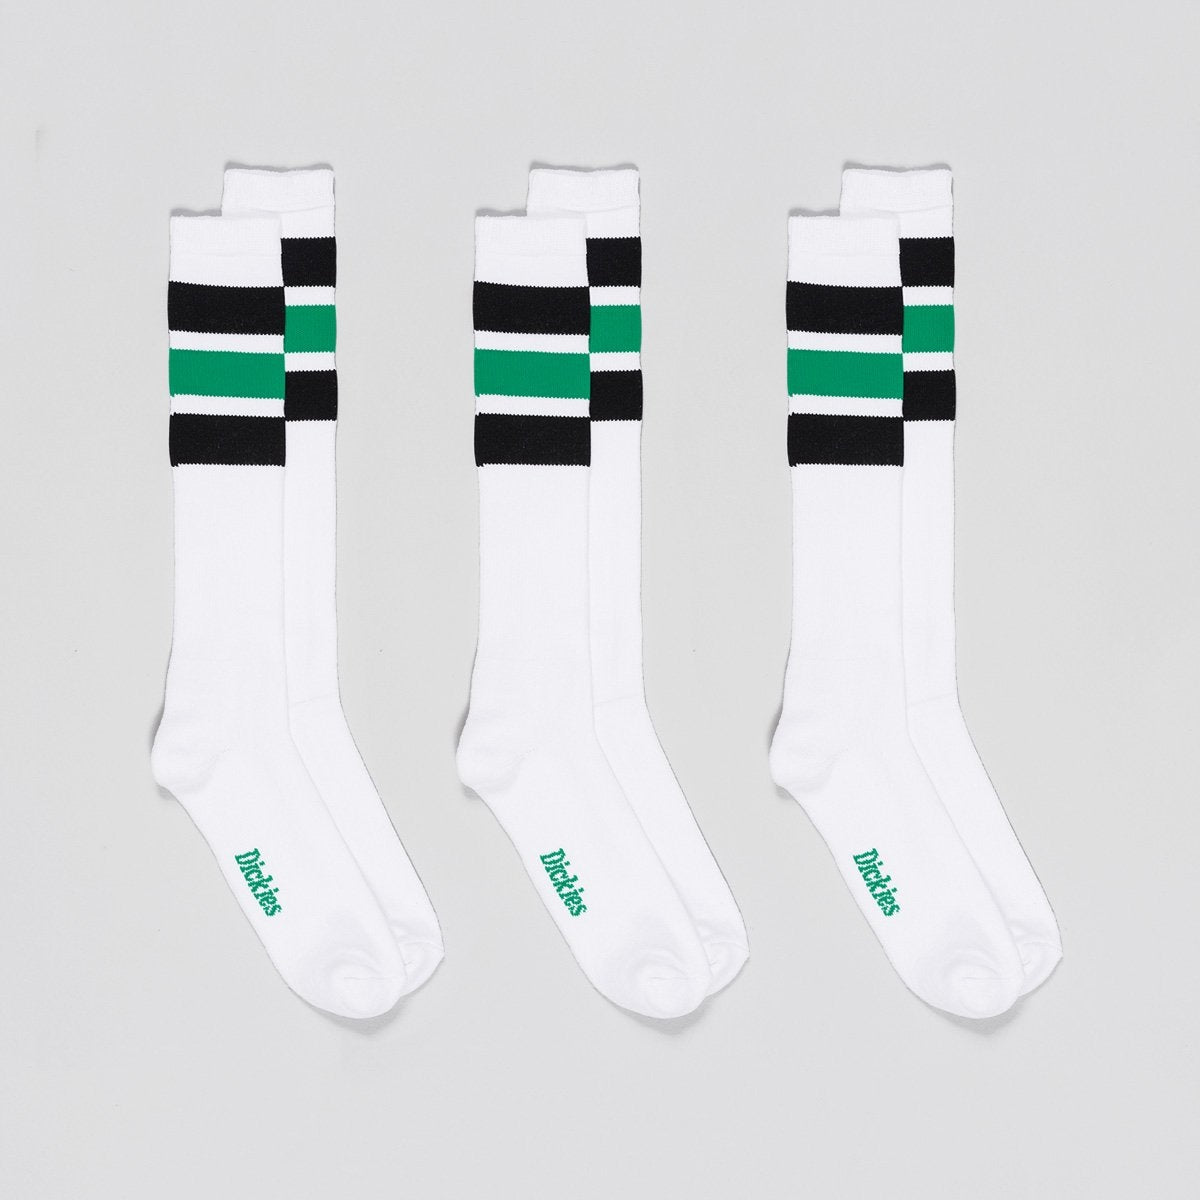 Dickies Atlantic City Socks 3 Pack Black/Green/White - Accessories